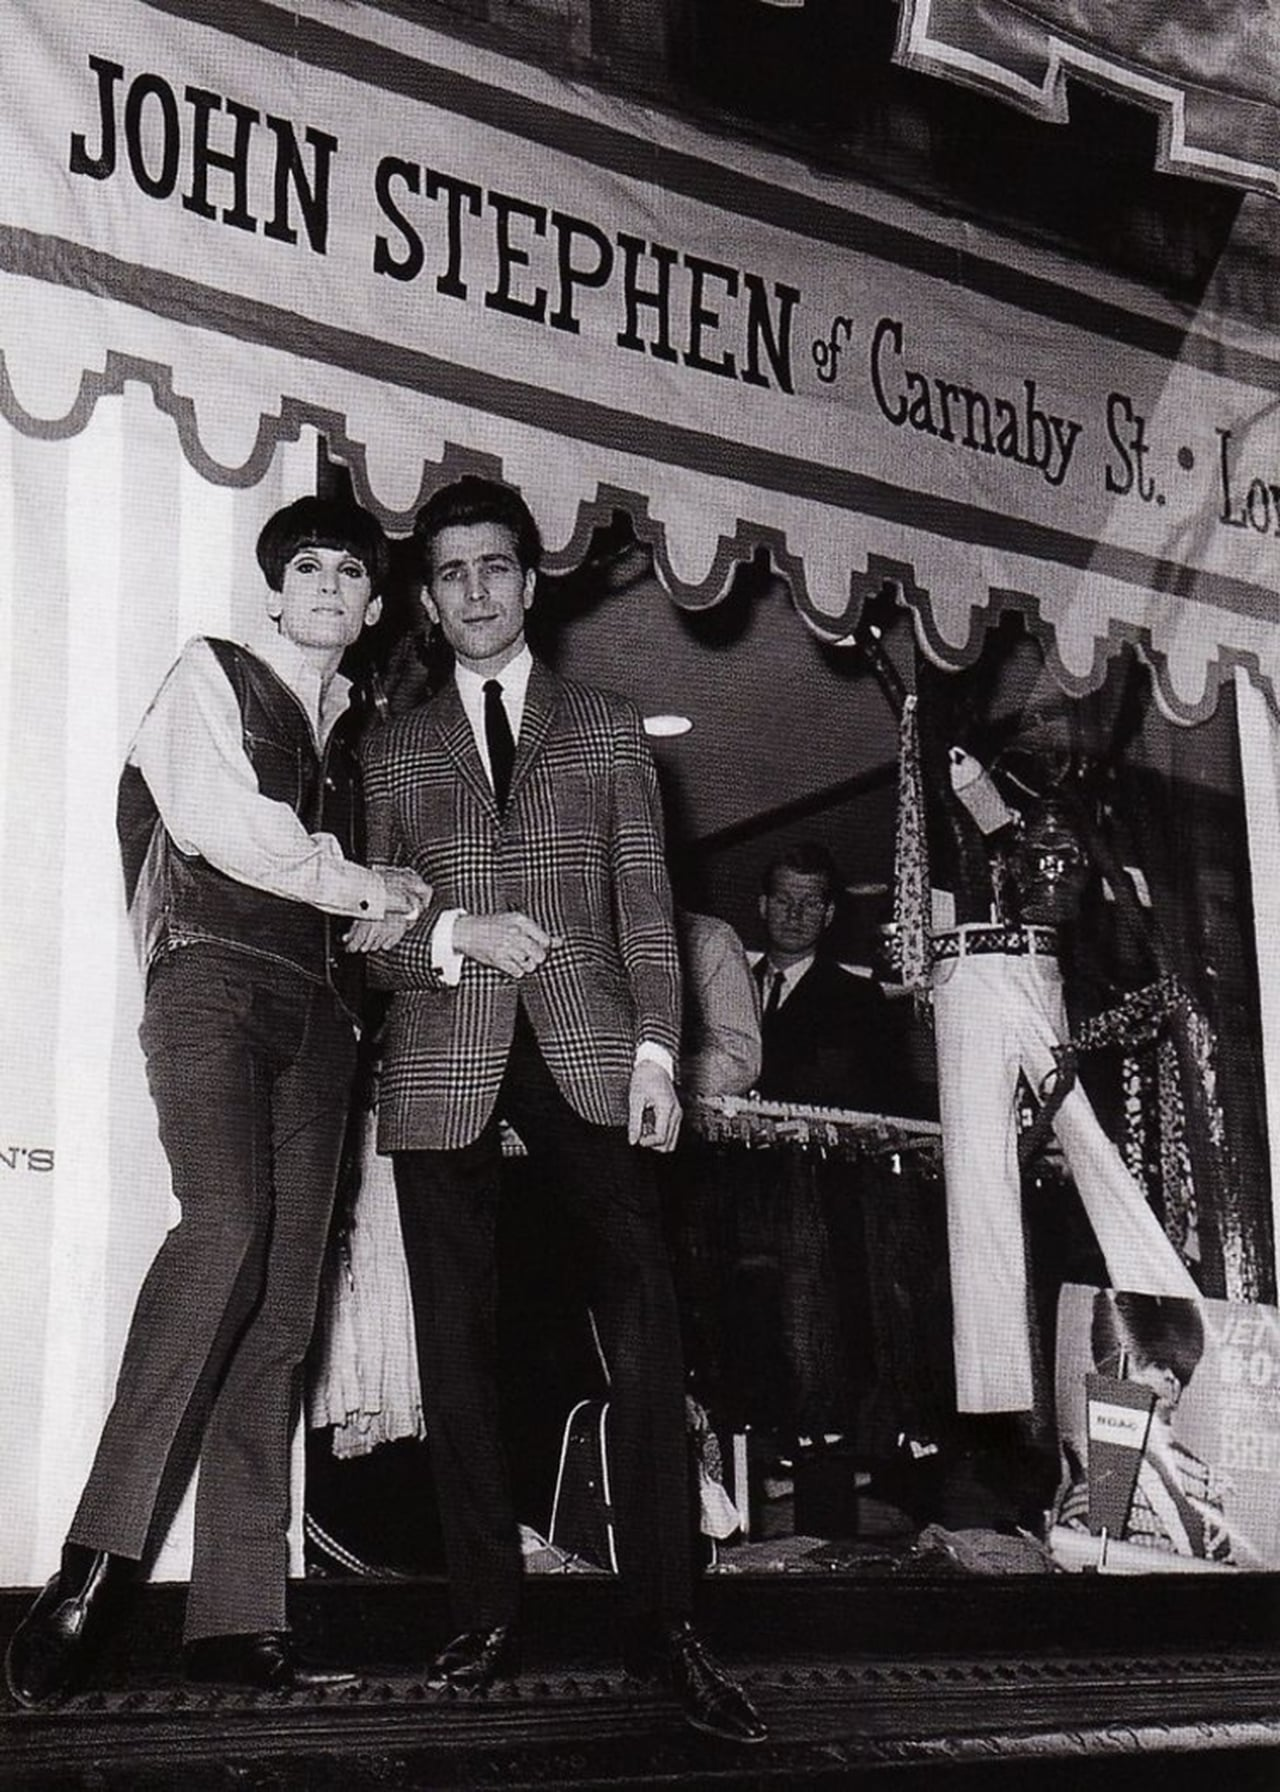 The King of Carnaby Street